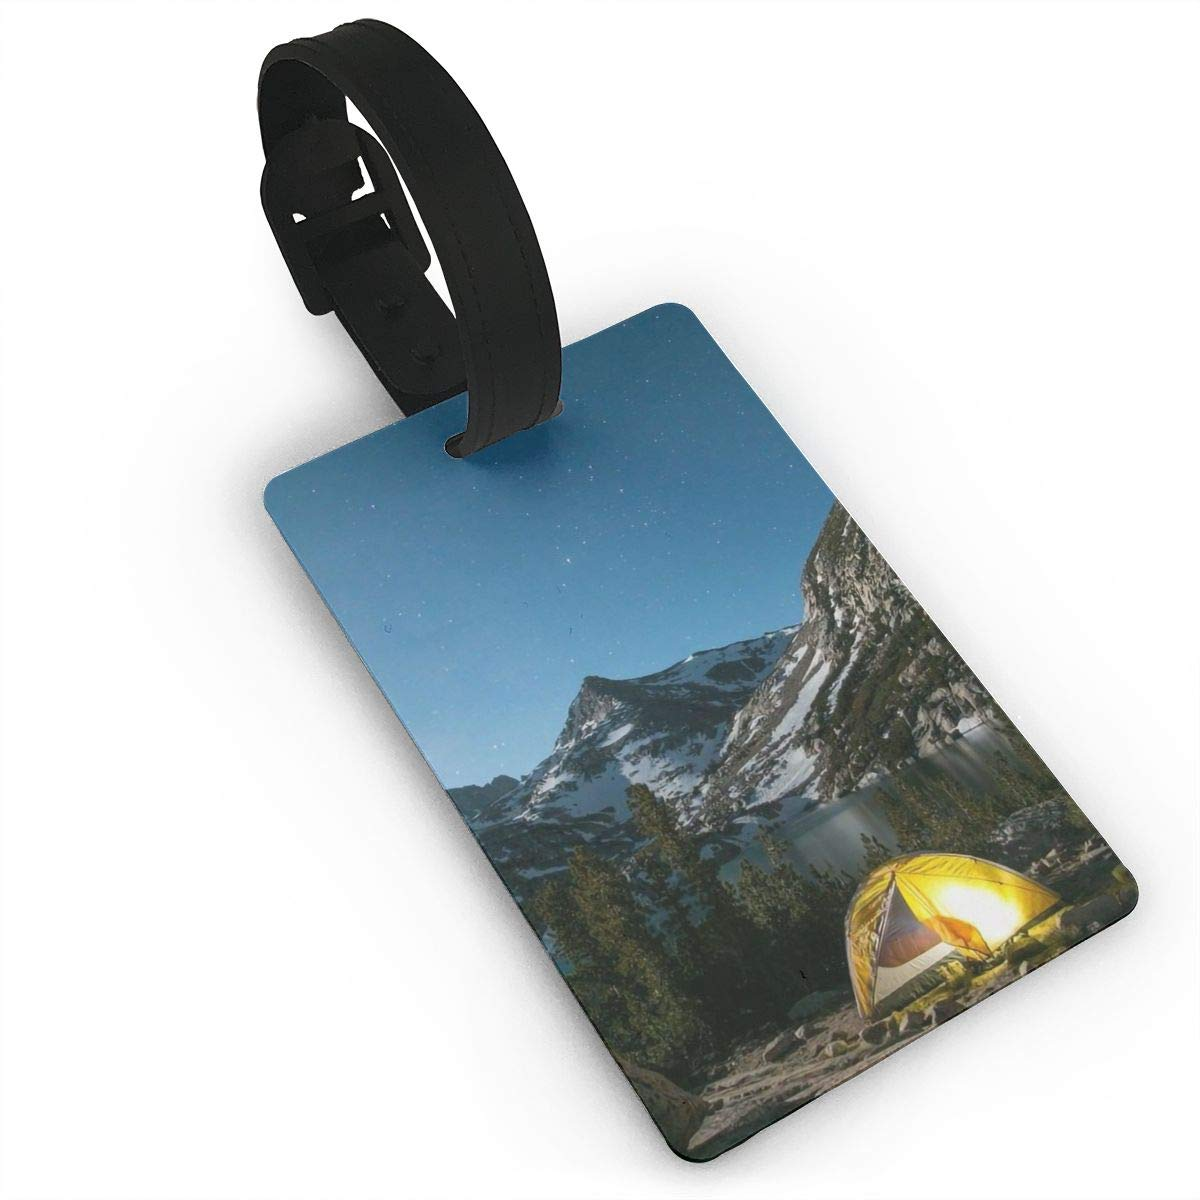 2 Pack Luggage Tags Camping Cruise Luggage Tag For Travel Tags Accessories